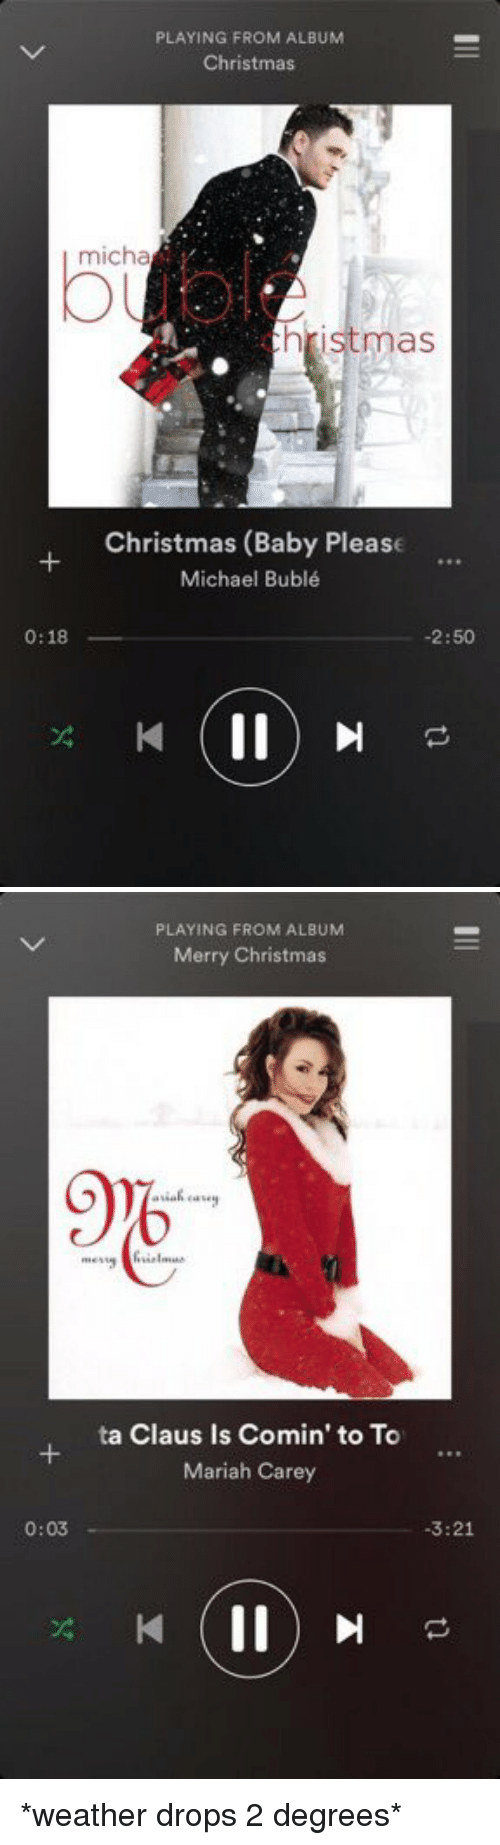 Baby, It's Cold Outside, Christmas, and Mariah Carey: 0:18  PLAYING FROM ALBUM  Christmas  hristmas  Christmas (Baby Please  Michael Bublé  -2:50   PLAYING FROM ALBUM  Merry Christmas  9%  ta Claus Is Comin' to To  Mariah Carey  0:03  3:21 *weather drops 2 degrees*